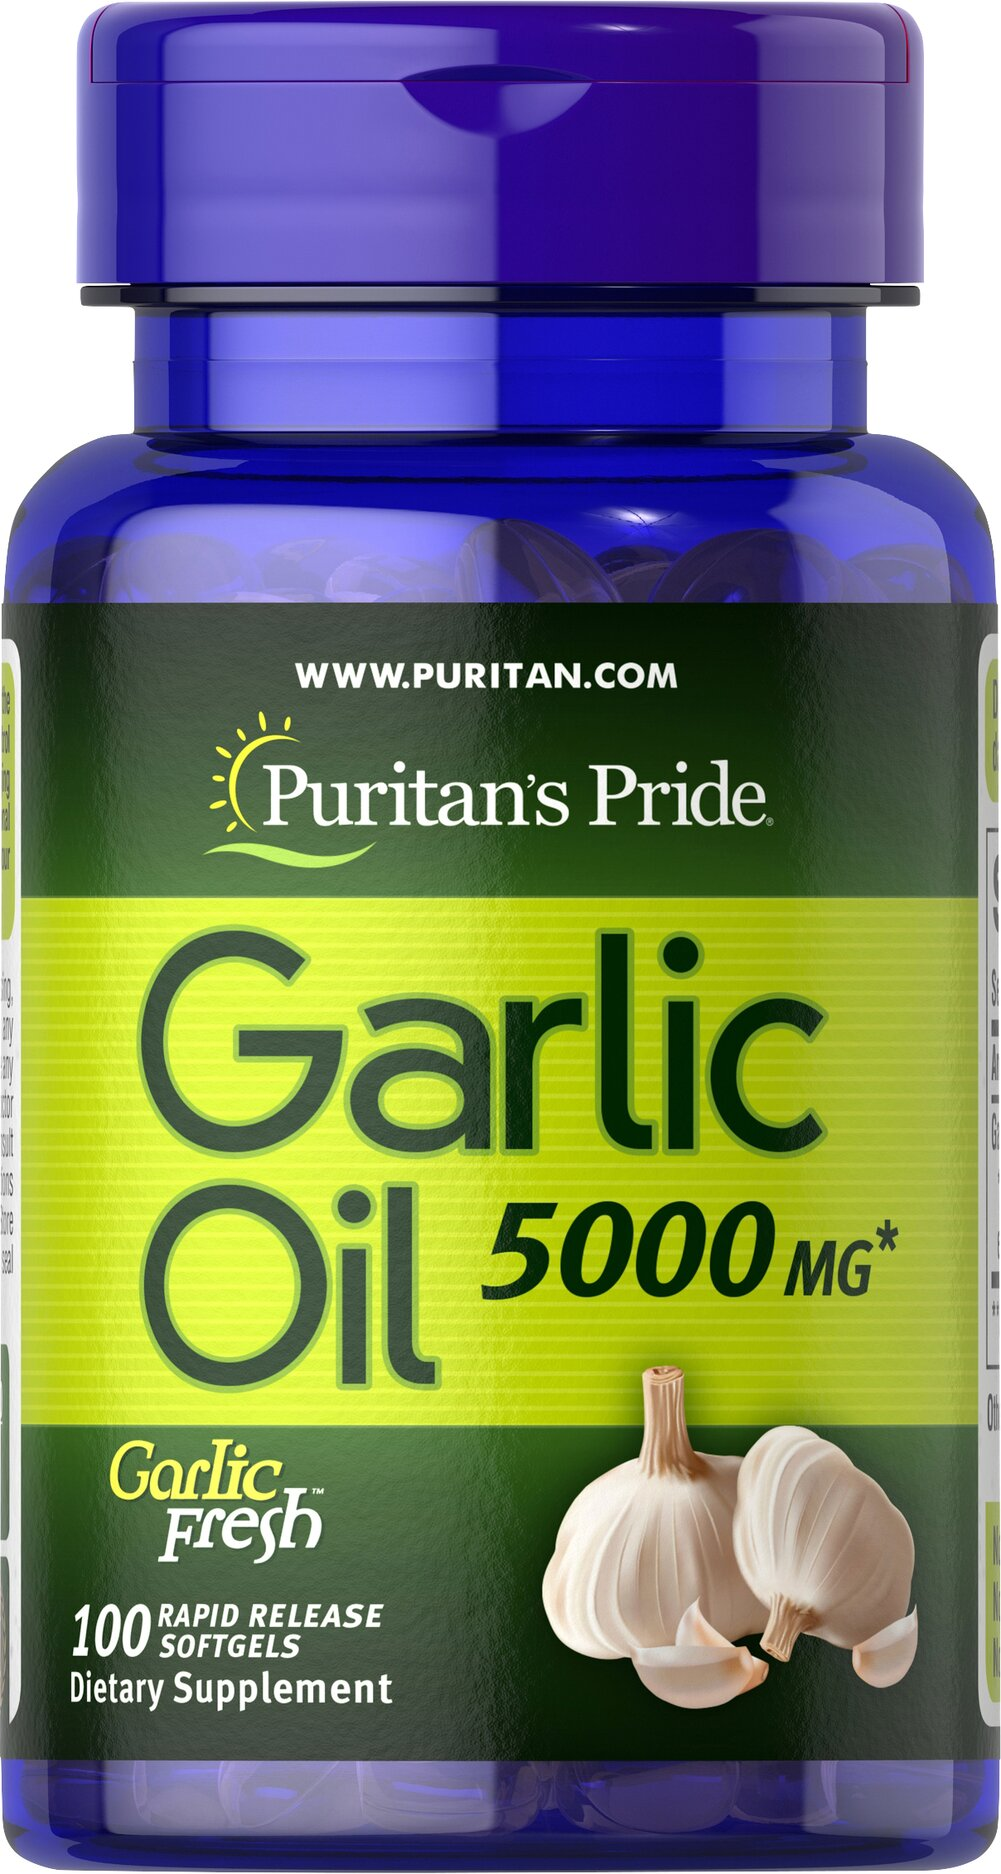 Garlic Oil 5000 mg <p>Cholesterol Support**</p><p>Supports Cardiovascular Health**</p><p>Whether warding off evil spirits or flavoring sauces, Garlic has been known for its beneficial qualities. Natural ingredients in Garlic include alliin, allinase and allicin. Garlic promotes cardiovascular health and helps to maintain cholesterol levels that are already within the normal range.**</p> 100 Softgels 5000 mg $10.99